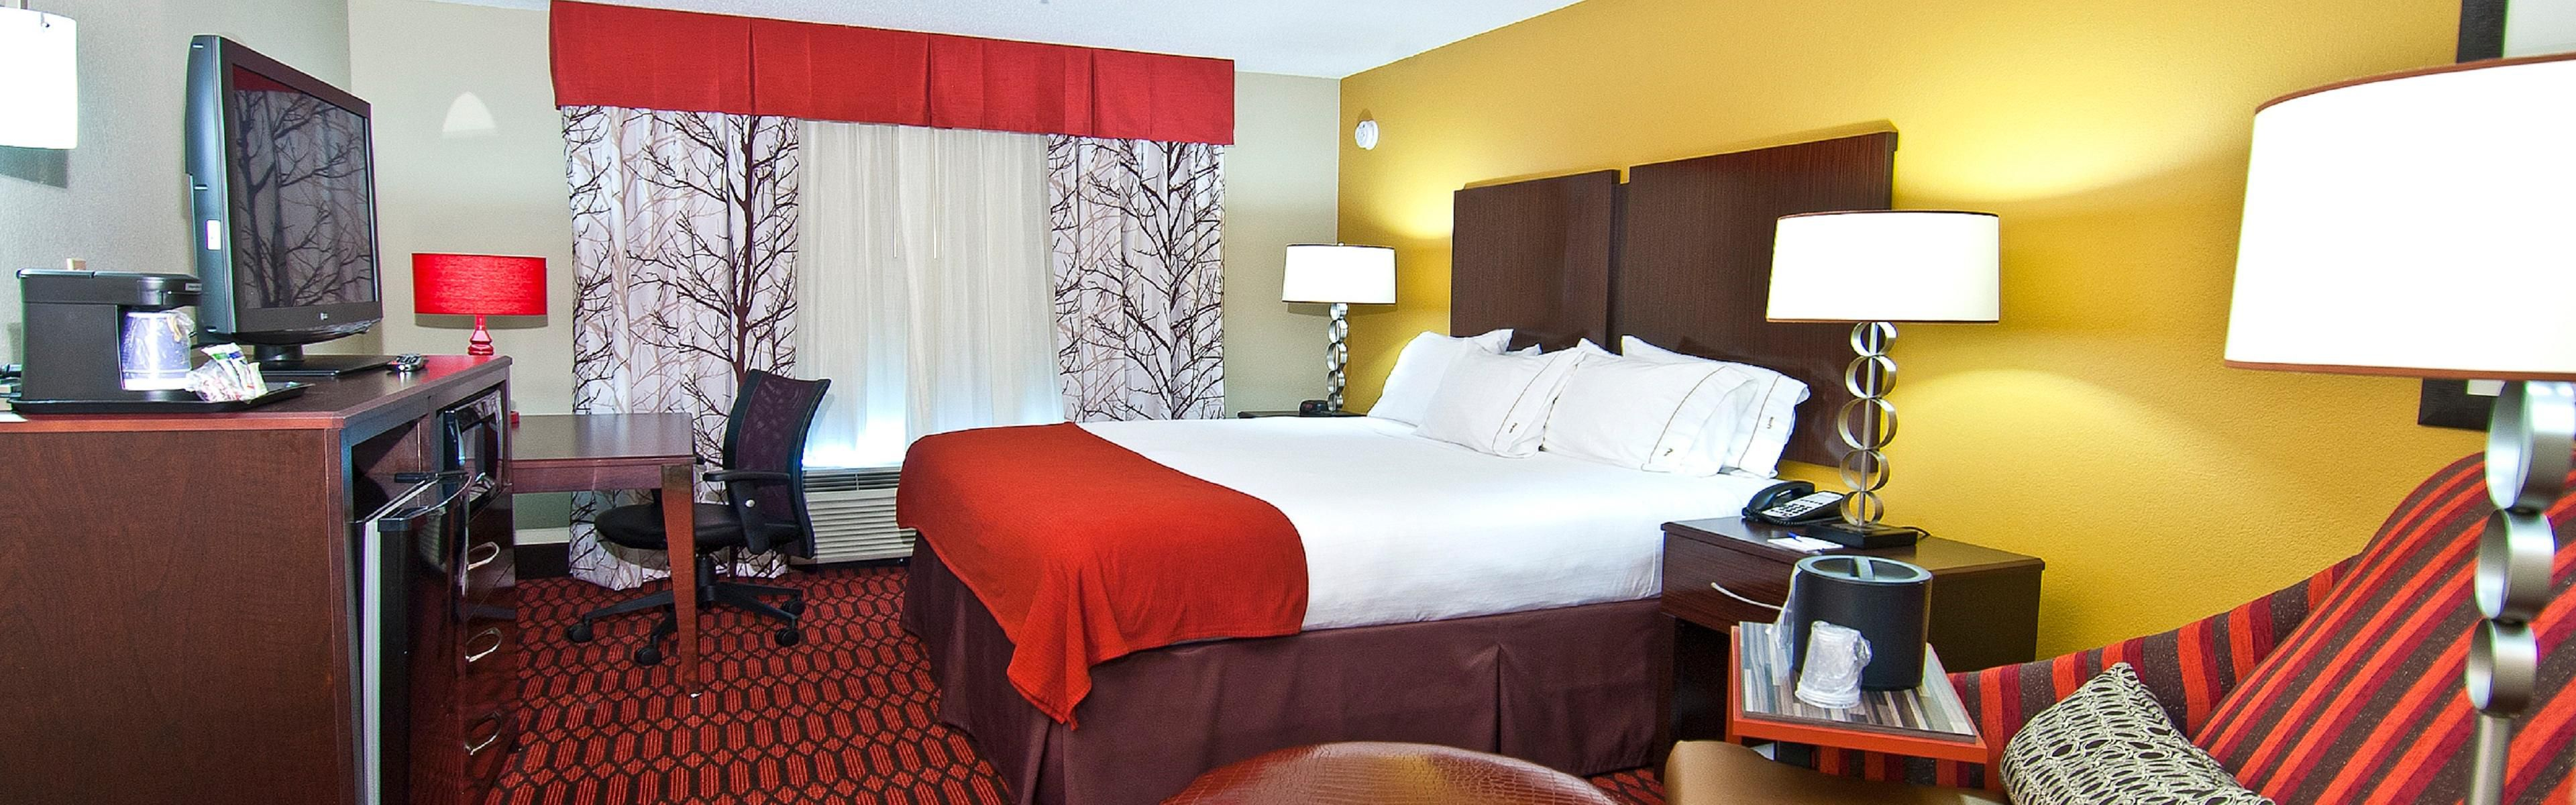 Holiday Inn Express Olive Branch image 1